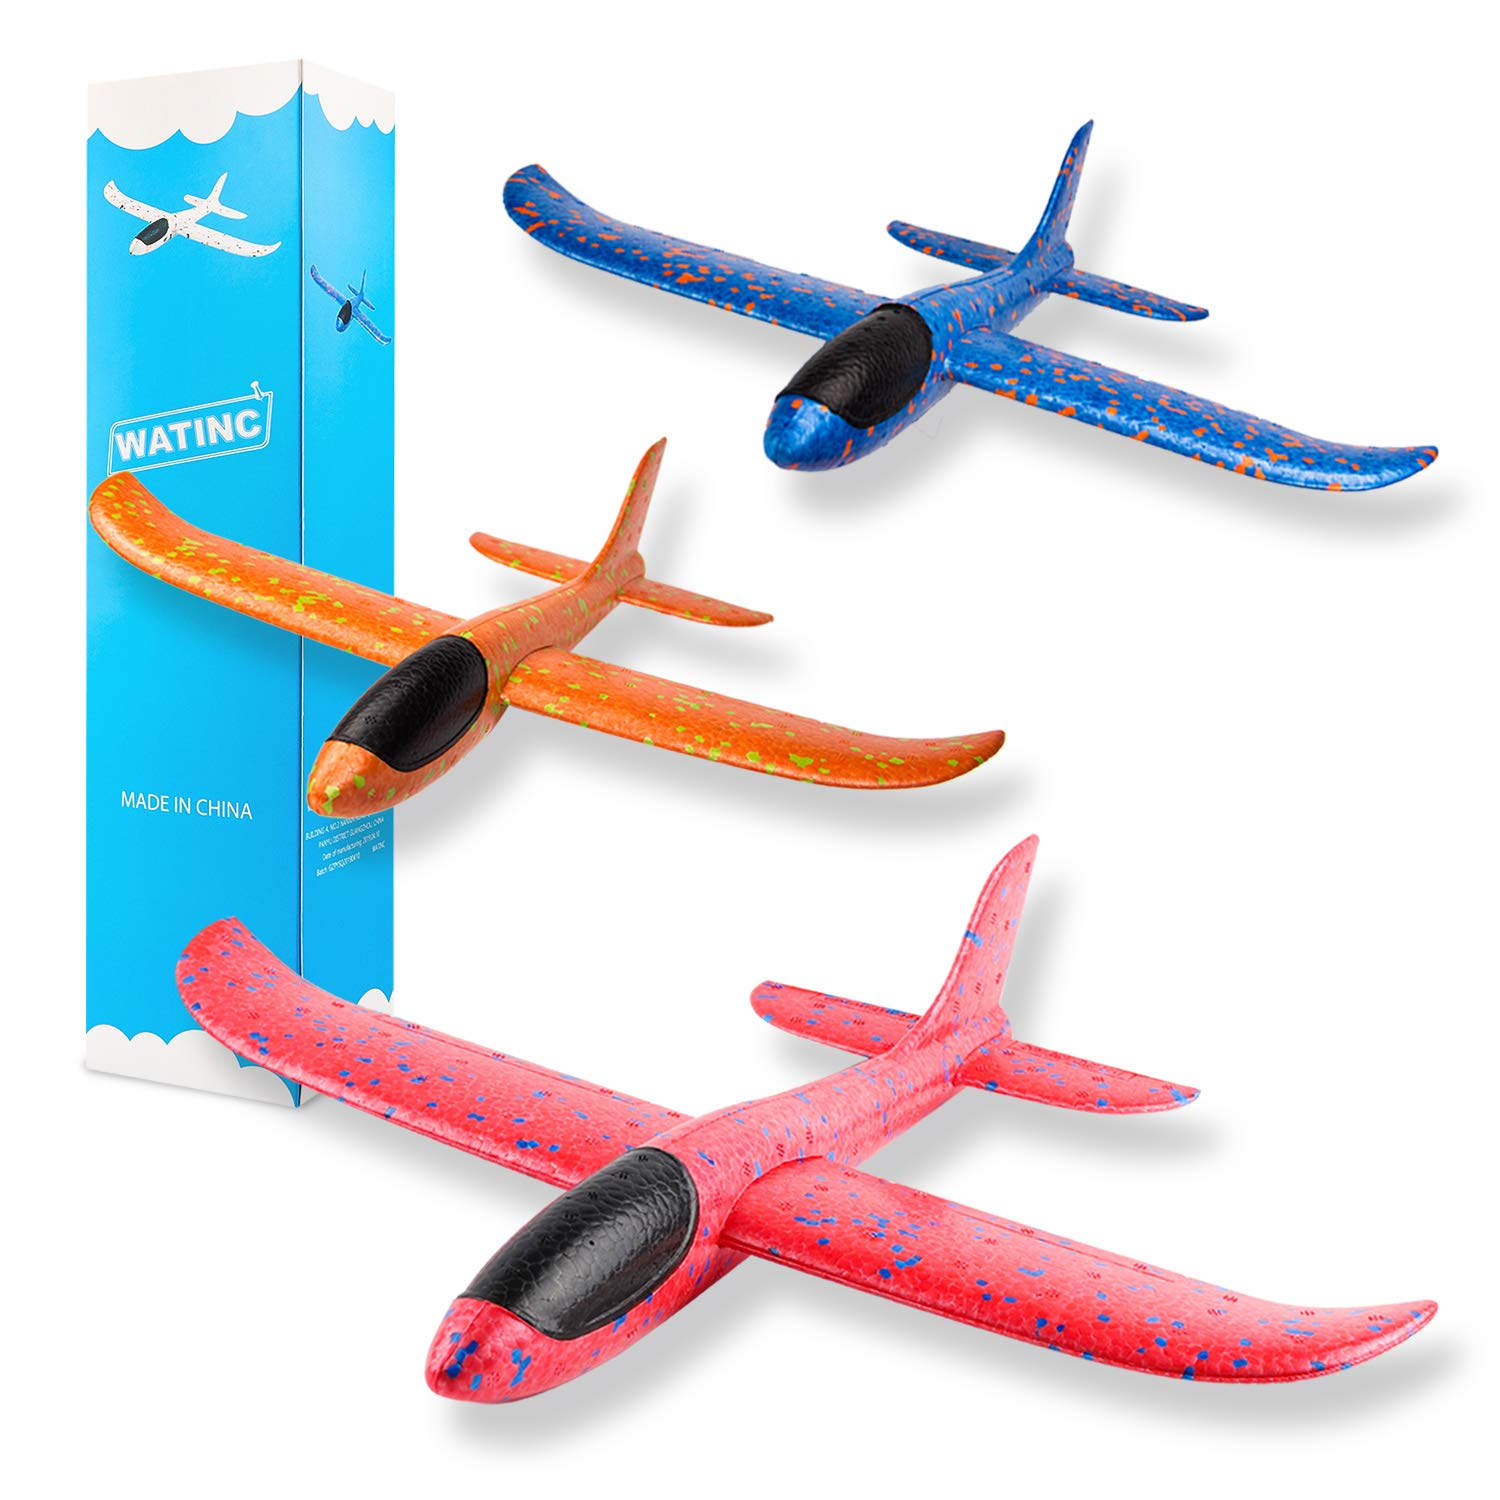 WATINC 3 pcs Airplane 14.5inch Manual Foam Flying Glider Planes Throwing Fun Challenging Games Outdoor Sports Toy Model Air Plane Two Flight Modes Blue Orange Red Aircraft for Boys Girls by WATINC